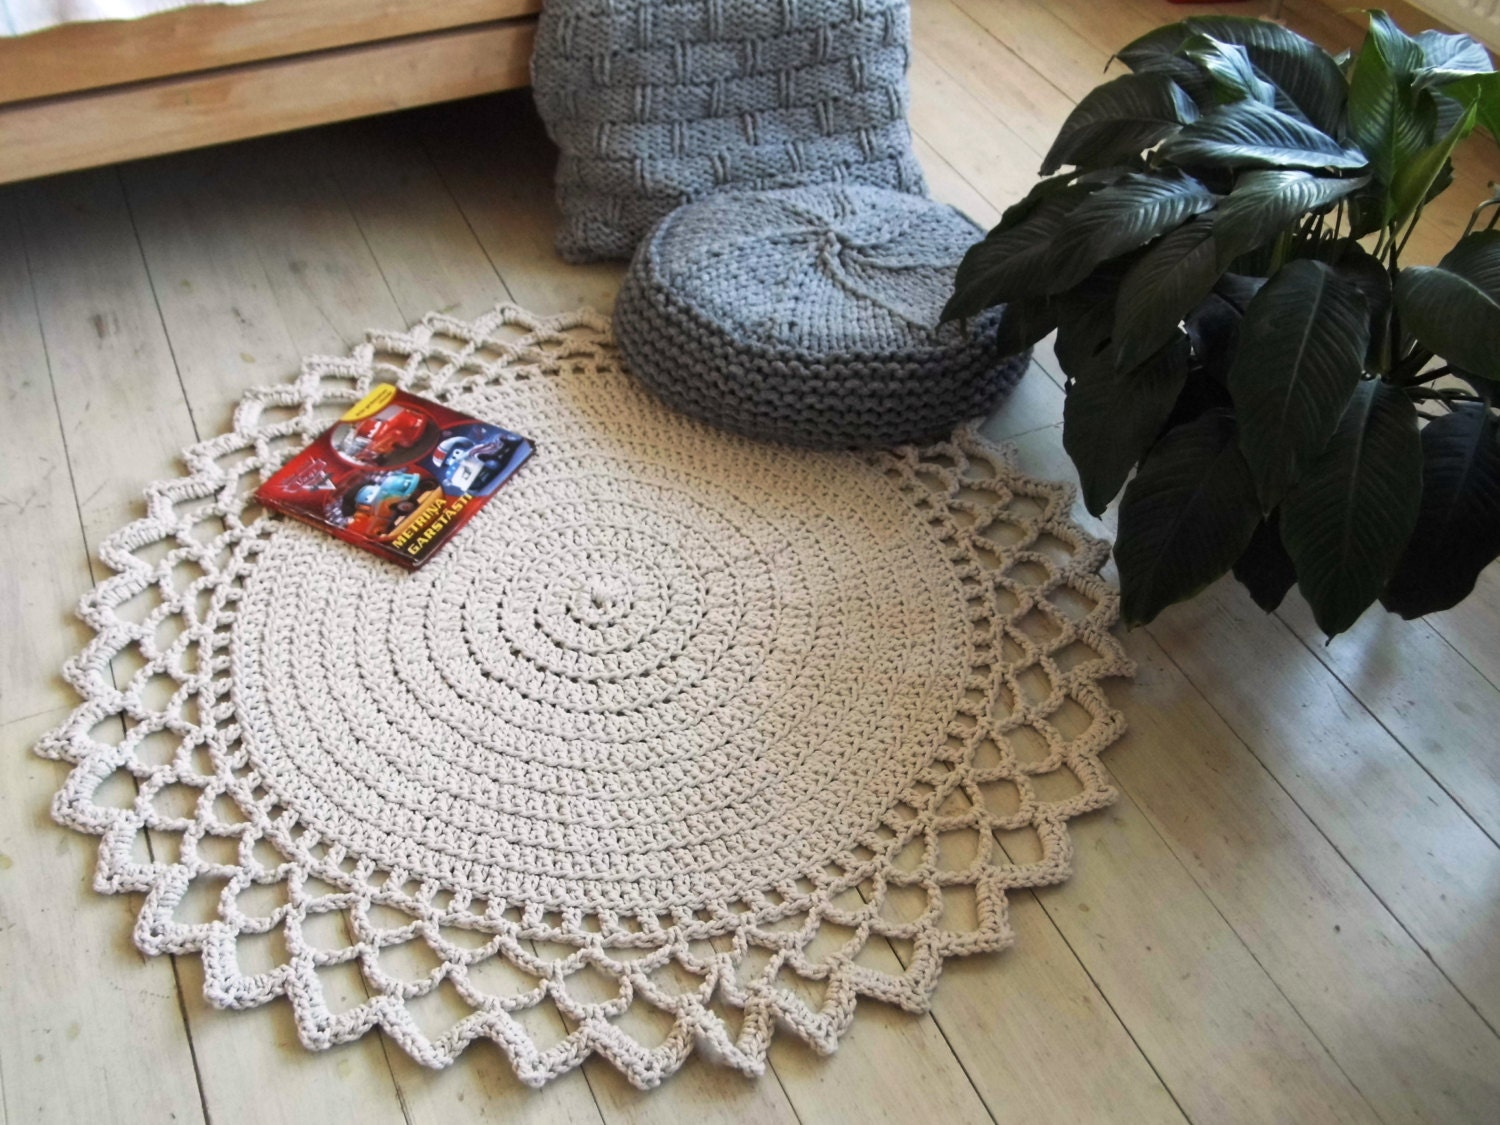 Crochet Rope Giant Doily Rug 100% Cotton 47 120 cm